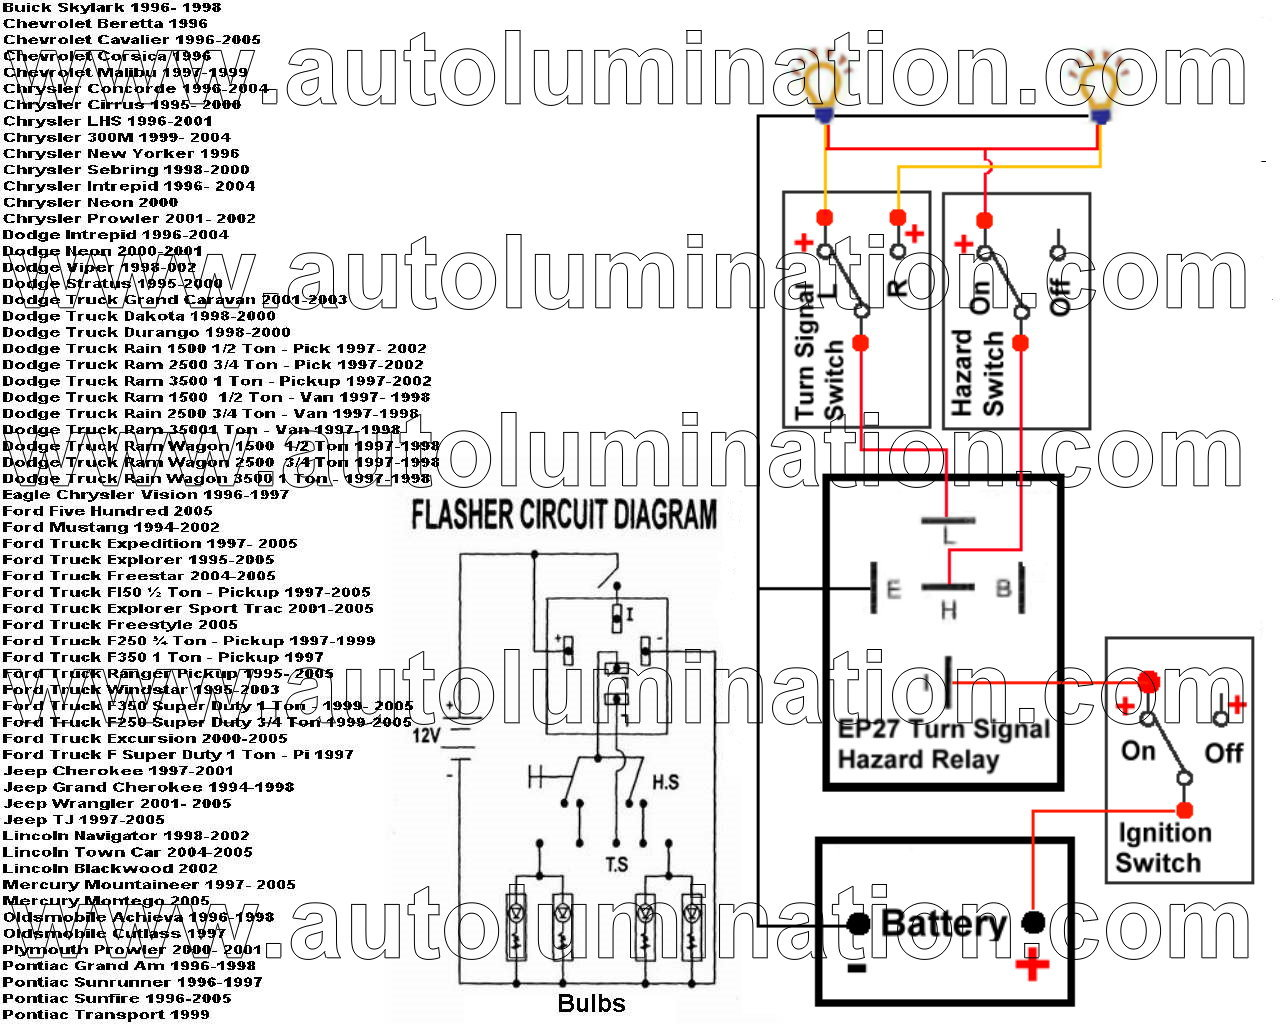 flasher relay wiring diagram ge oven diagrams led flashers electronic protectors and load